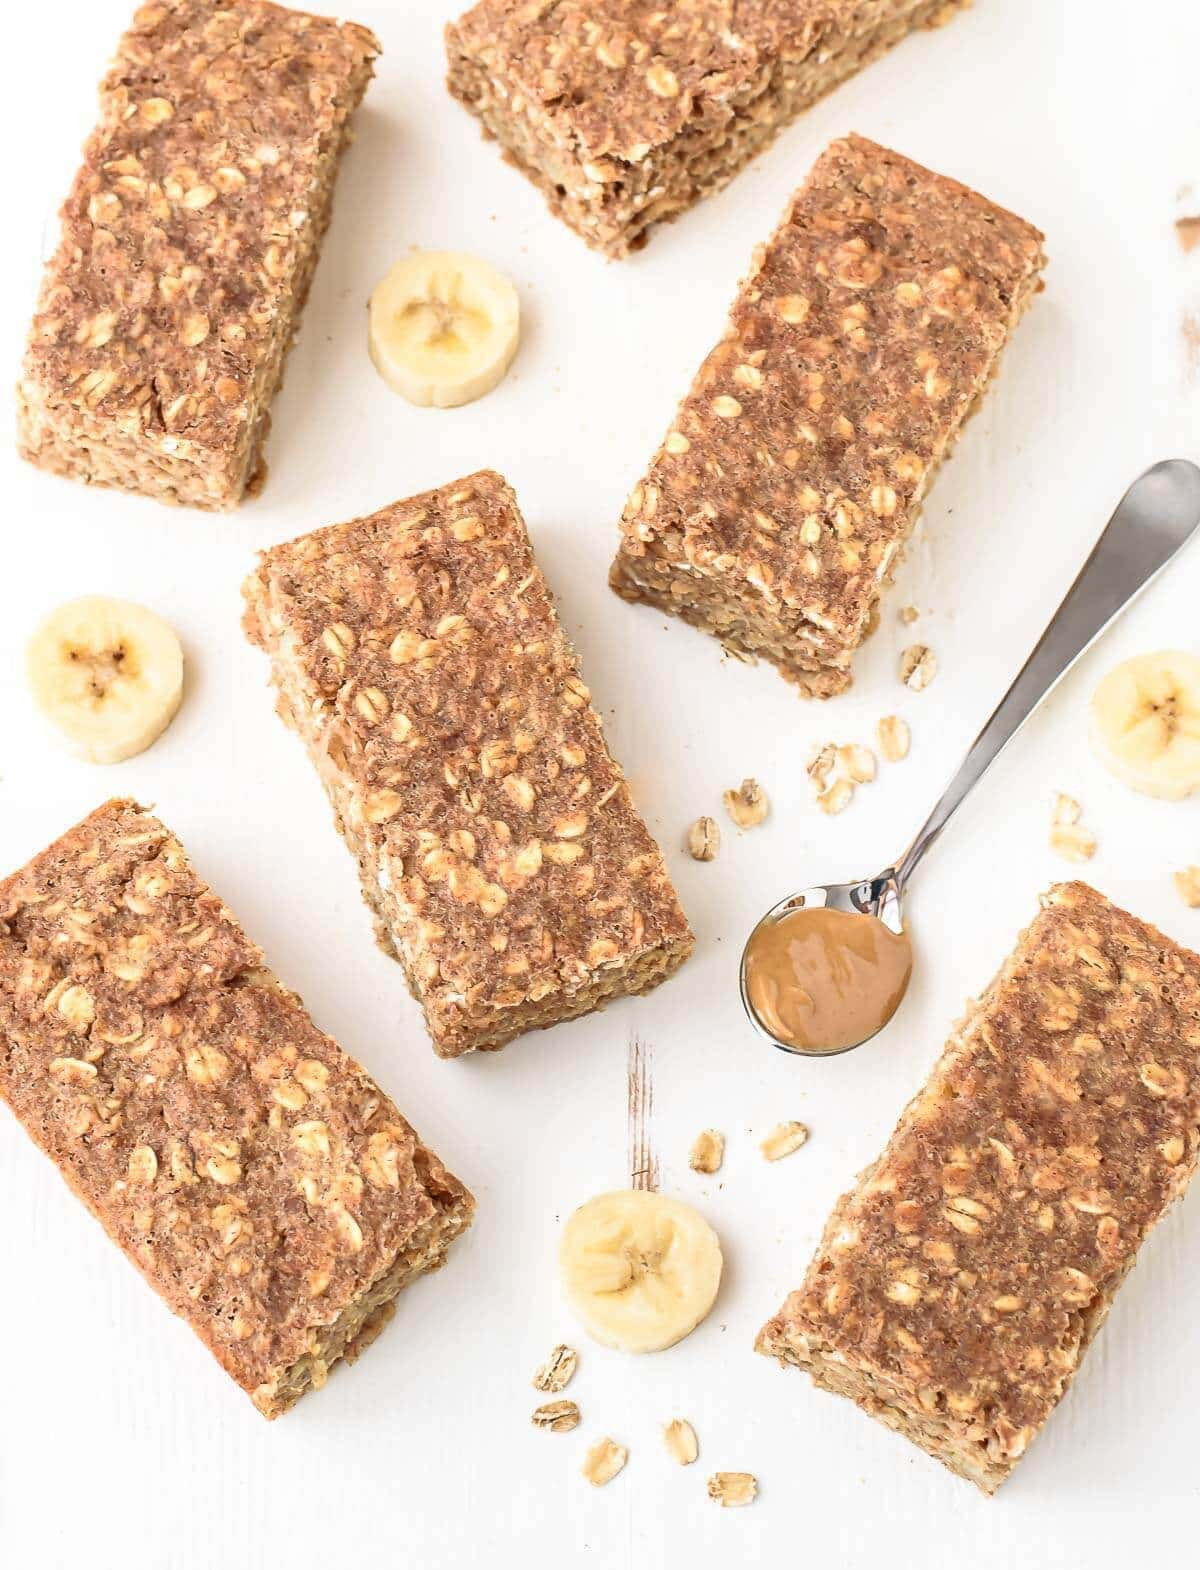 Oatmeal Breakfast Bars Healthy  Oatmeal Chocolate Chip Bars